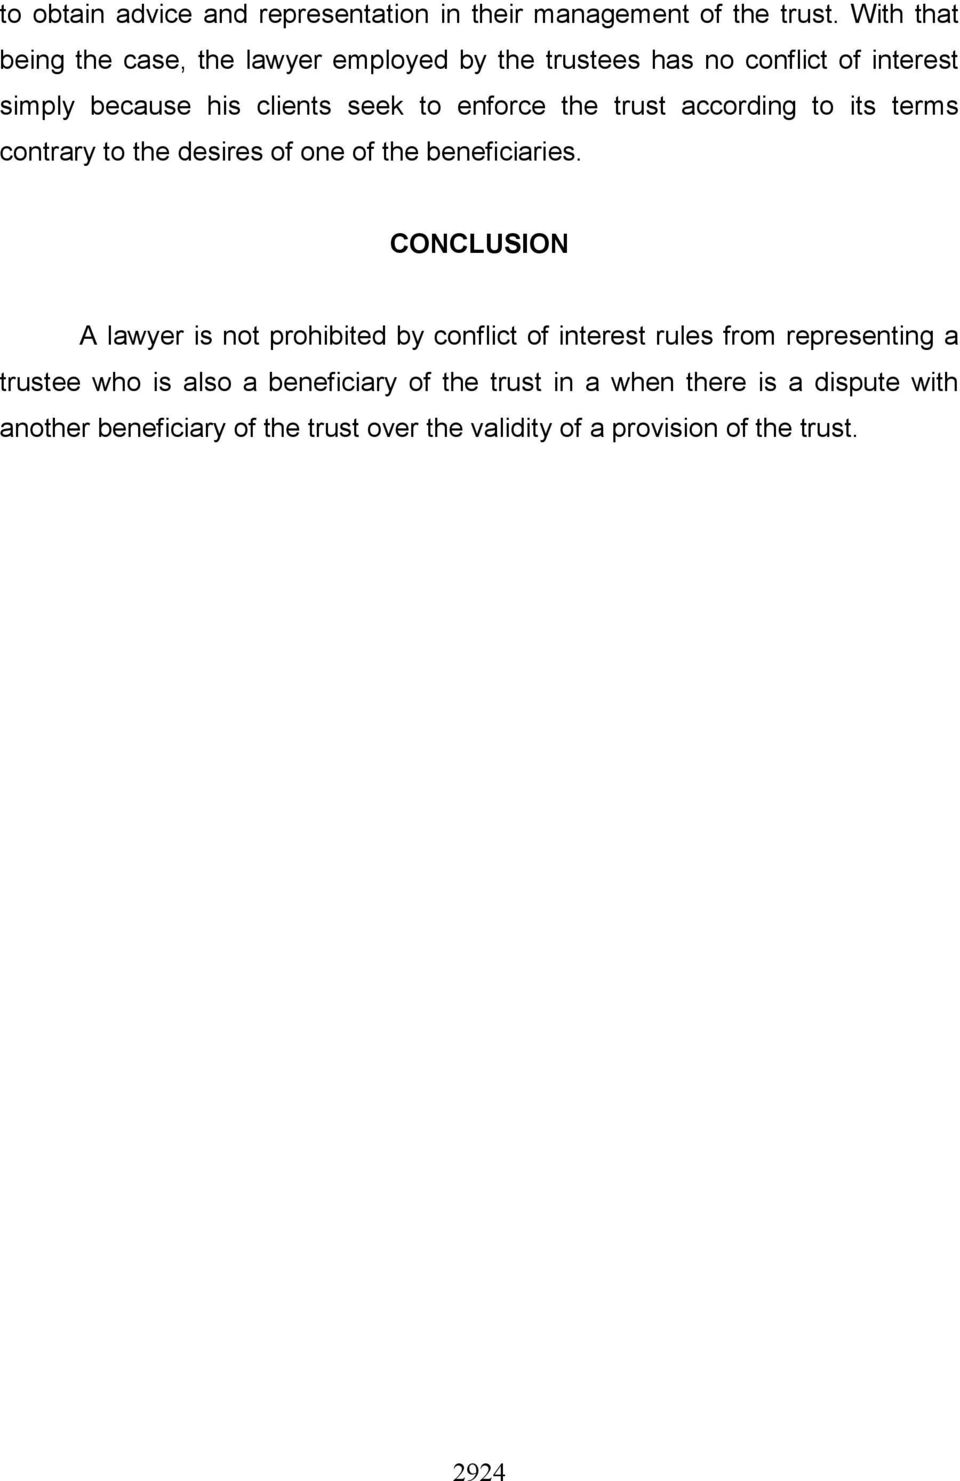 the trust according to its terms contrary to the desires of one of the beneficiaries.